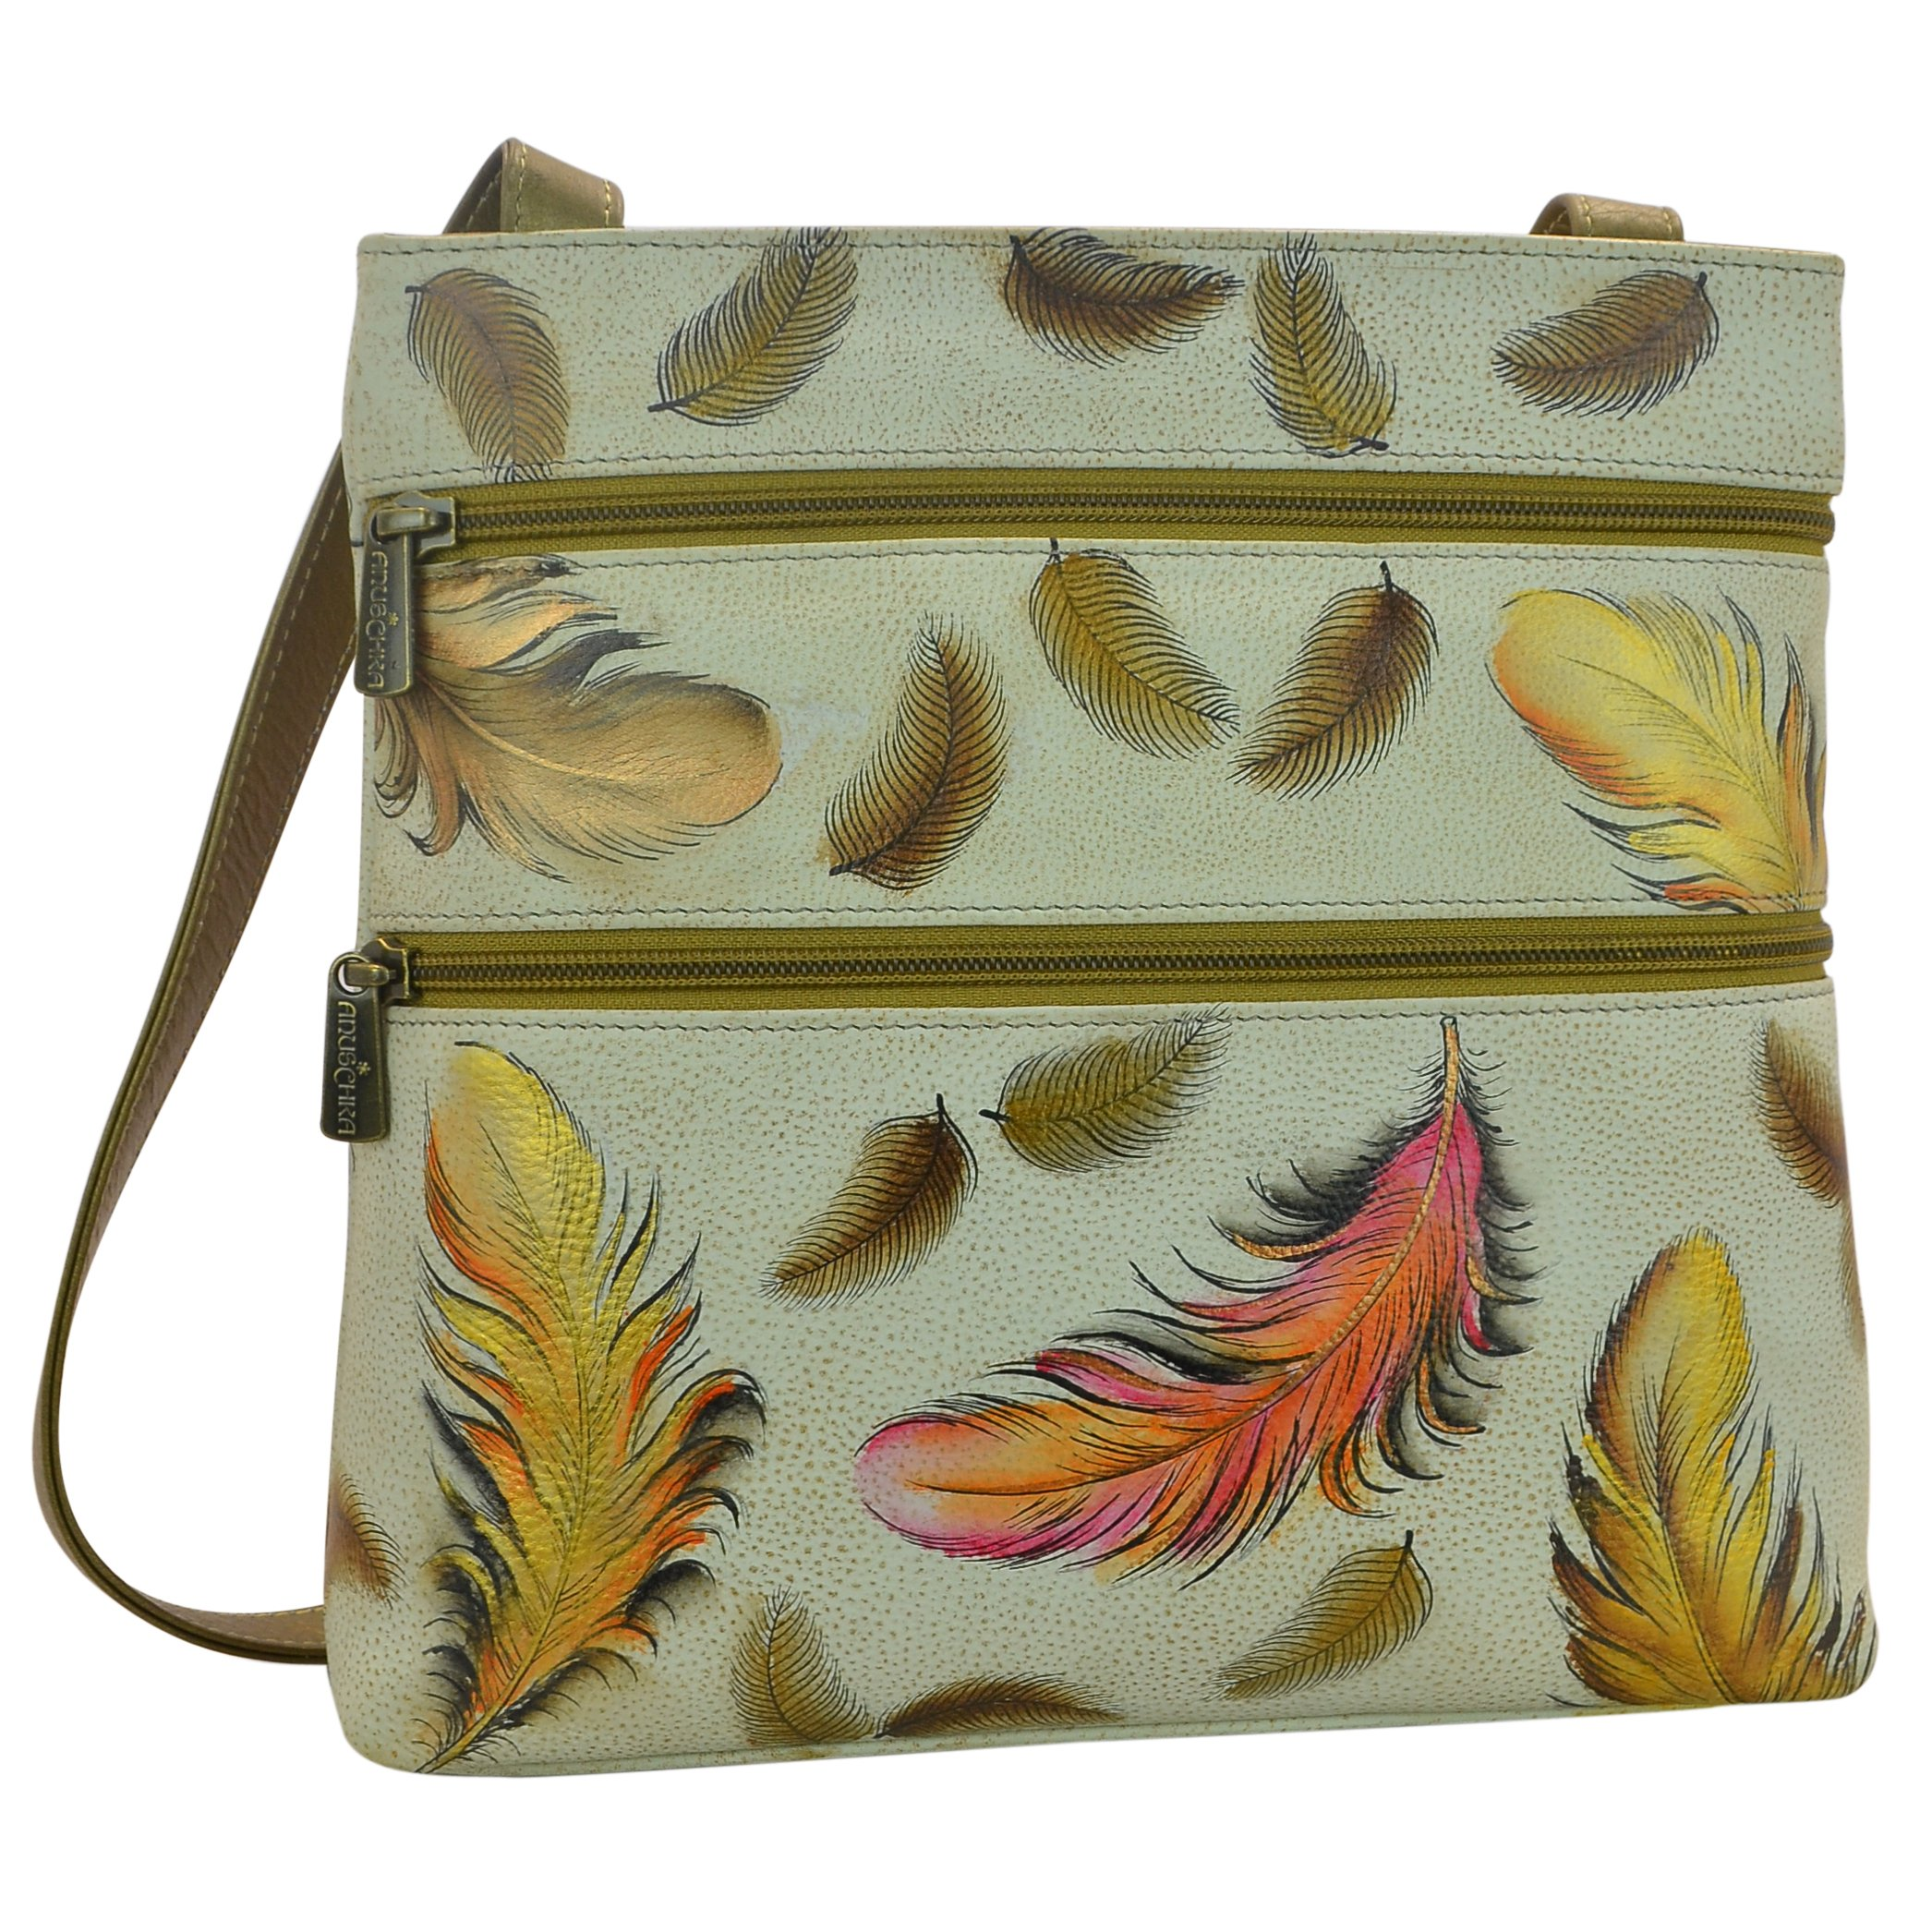 Anuschka Handpainted Leather Compact Travel Organizer, I-Floating Feathers Ivory by Anna by Anuschka